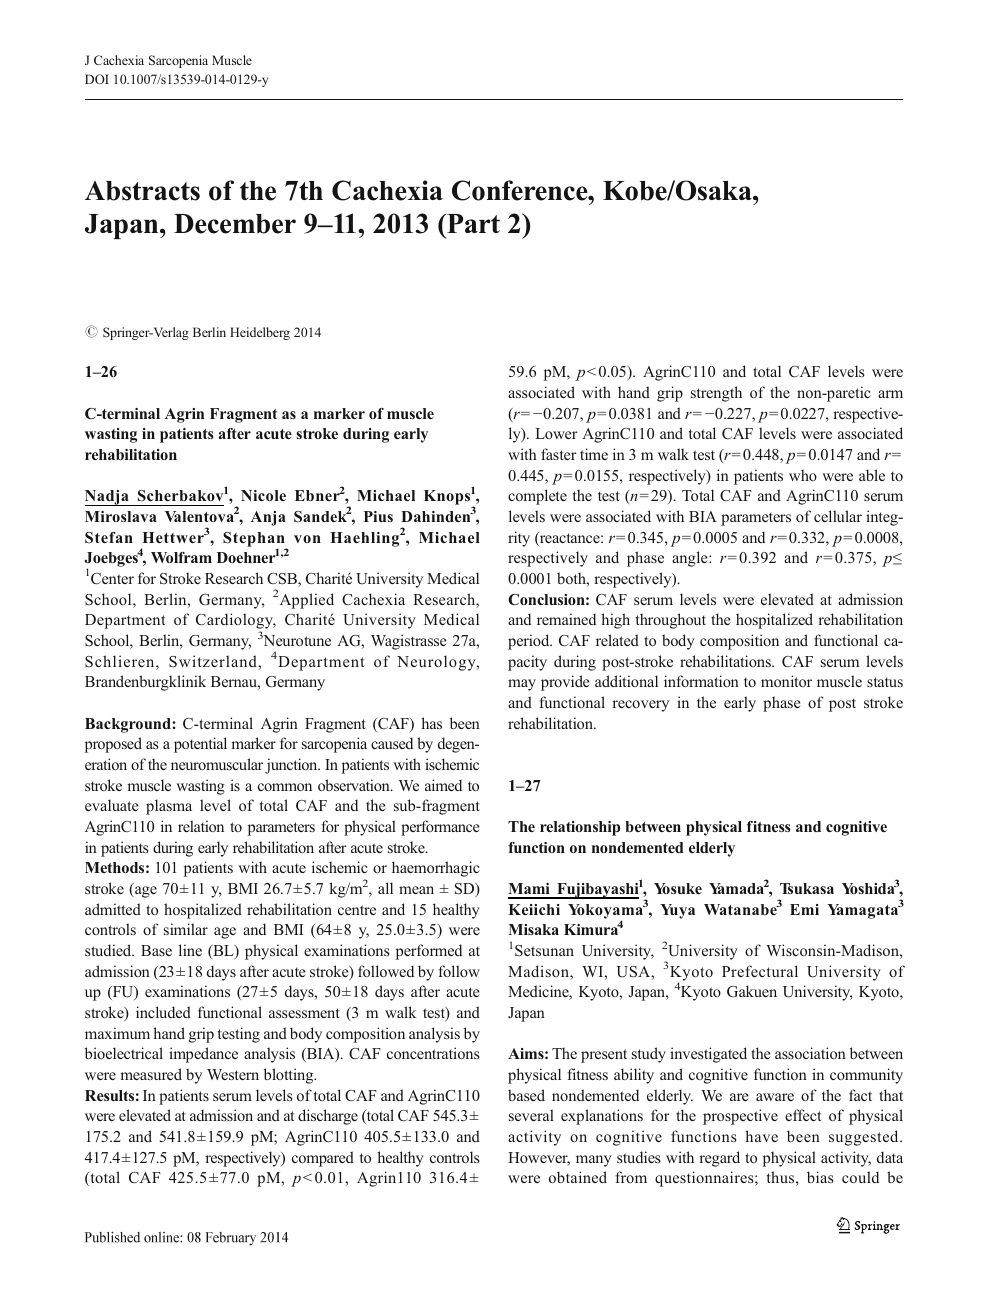 Wolfram Alpha Loses Madison Trial To >> Abstracts Of The 7th Cachexia Conference Kobe Osaka Japan